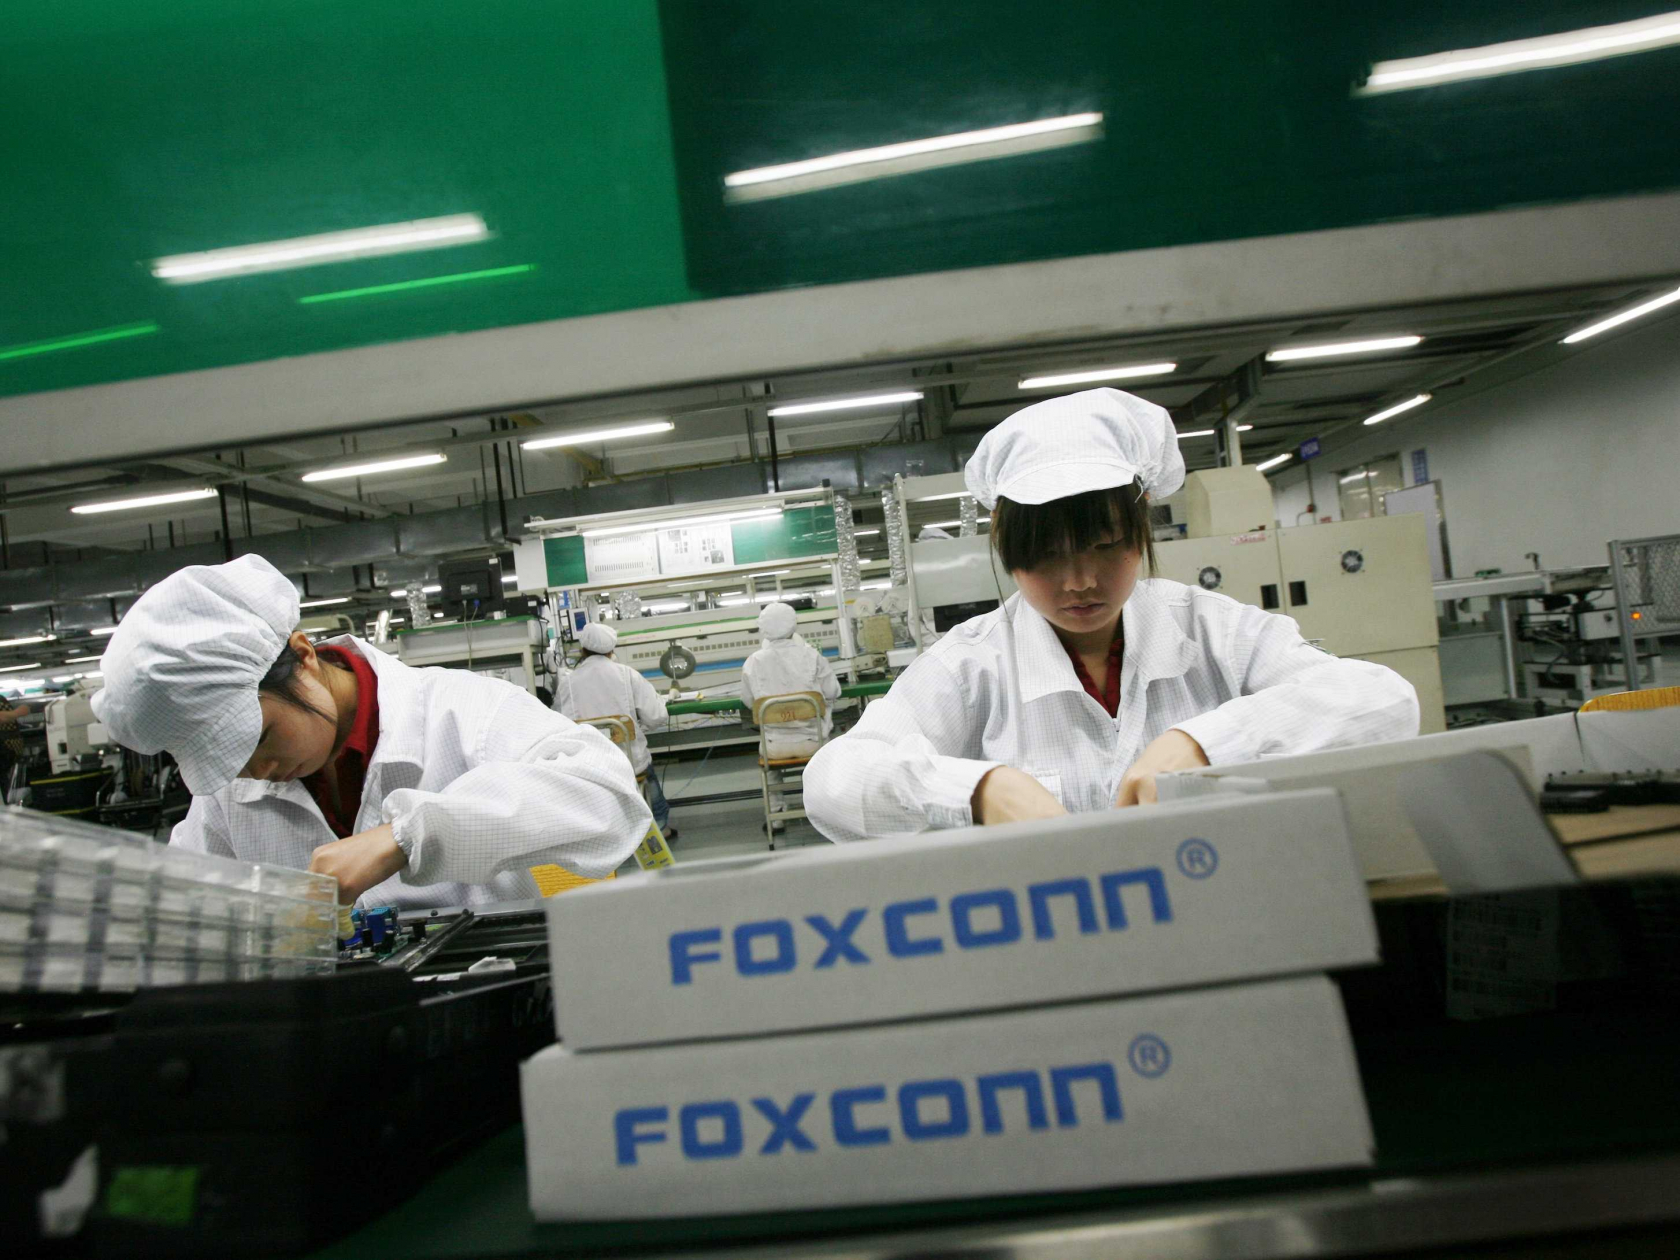 Foxconn set to drain 7 million gallons of water from Lake Michigan every day